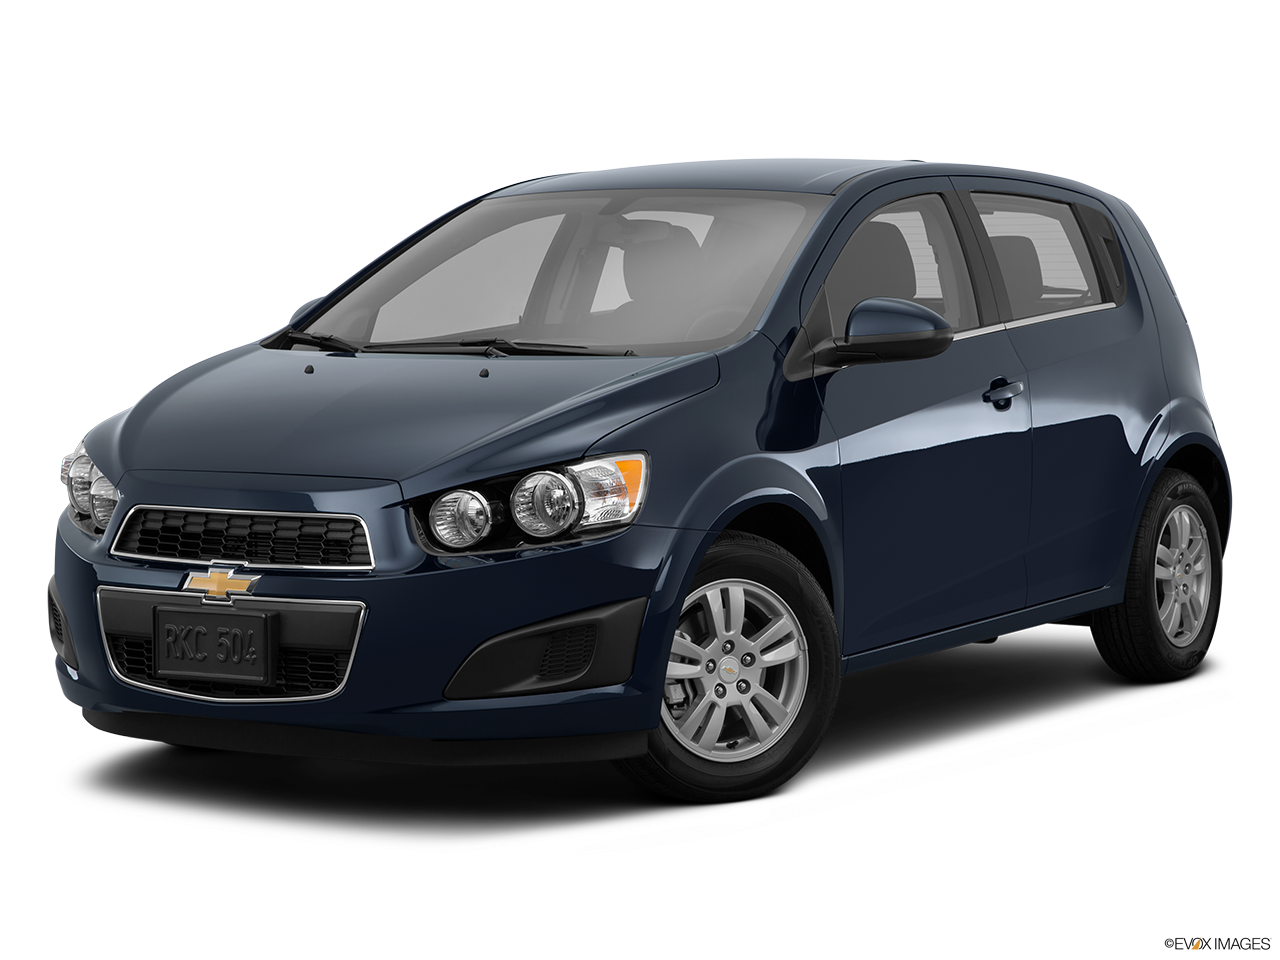 2015 chevrolet sonic information and photos zombiedrive. Black Bedroom Furniture Sets. Home Design Ideas